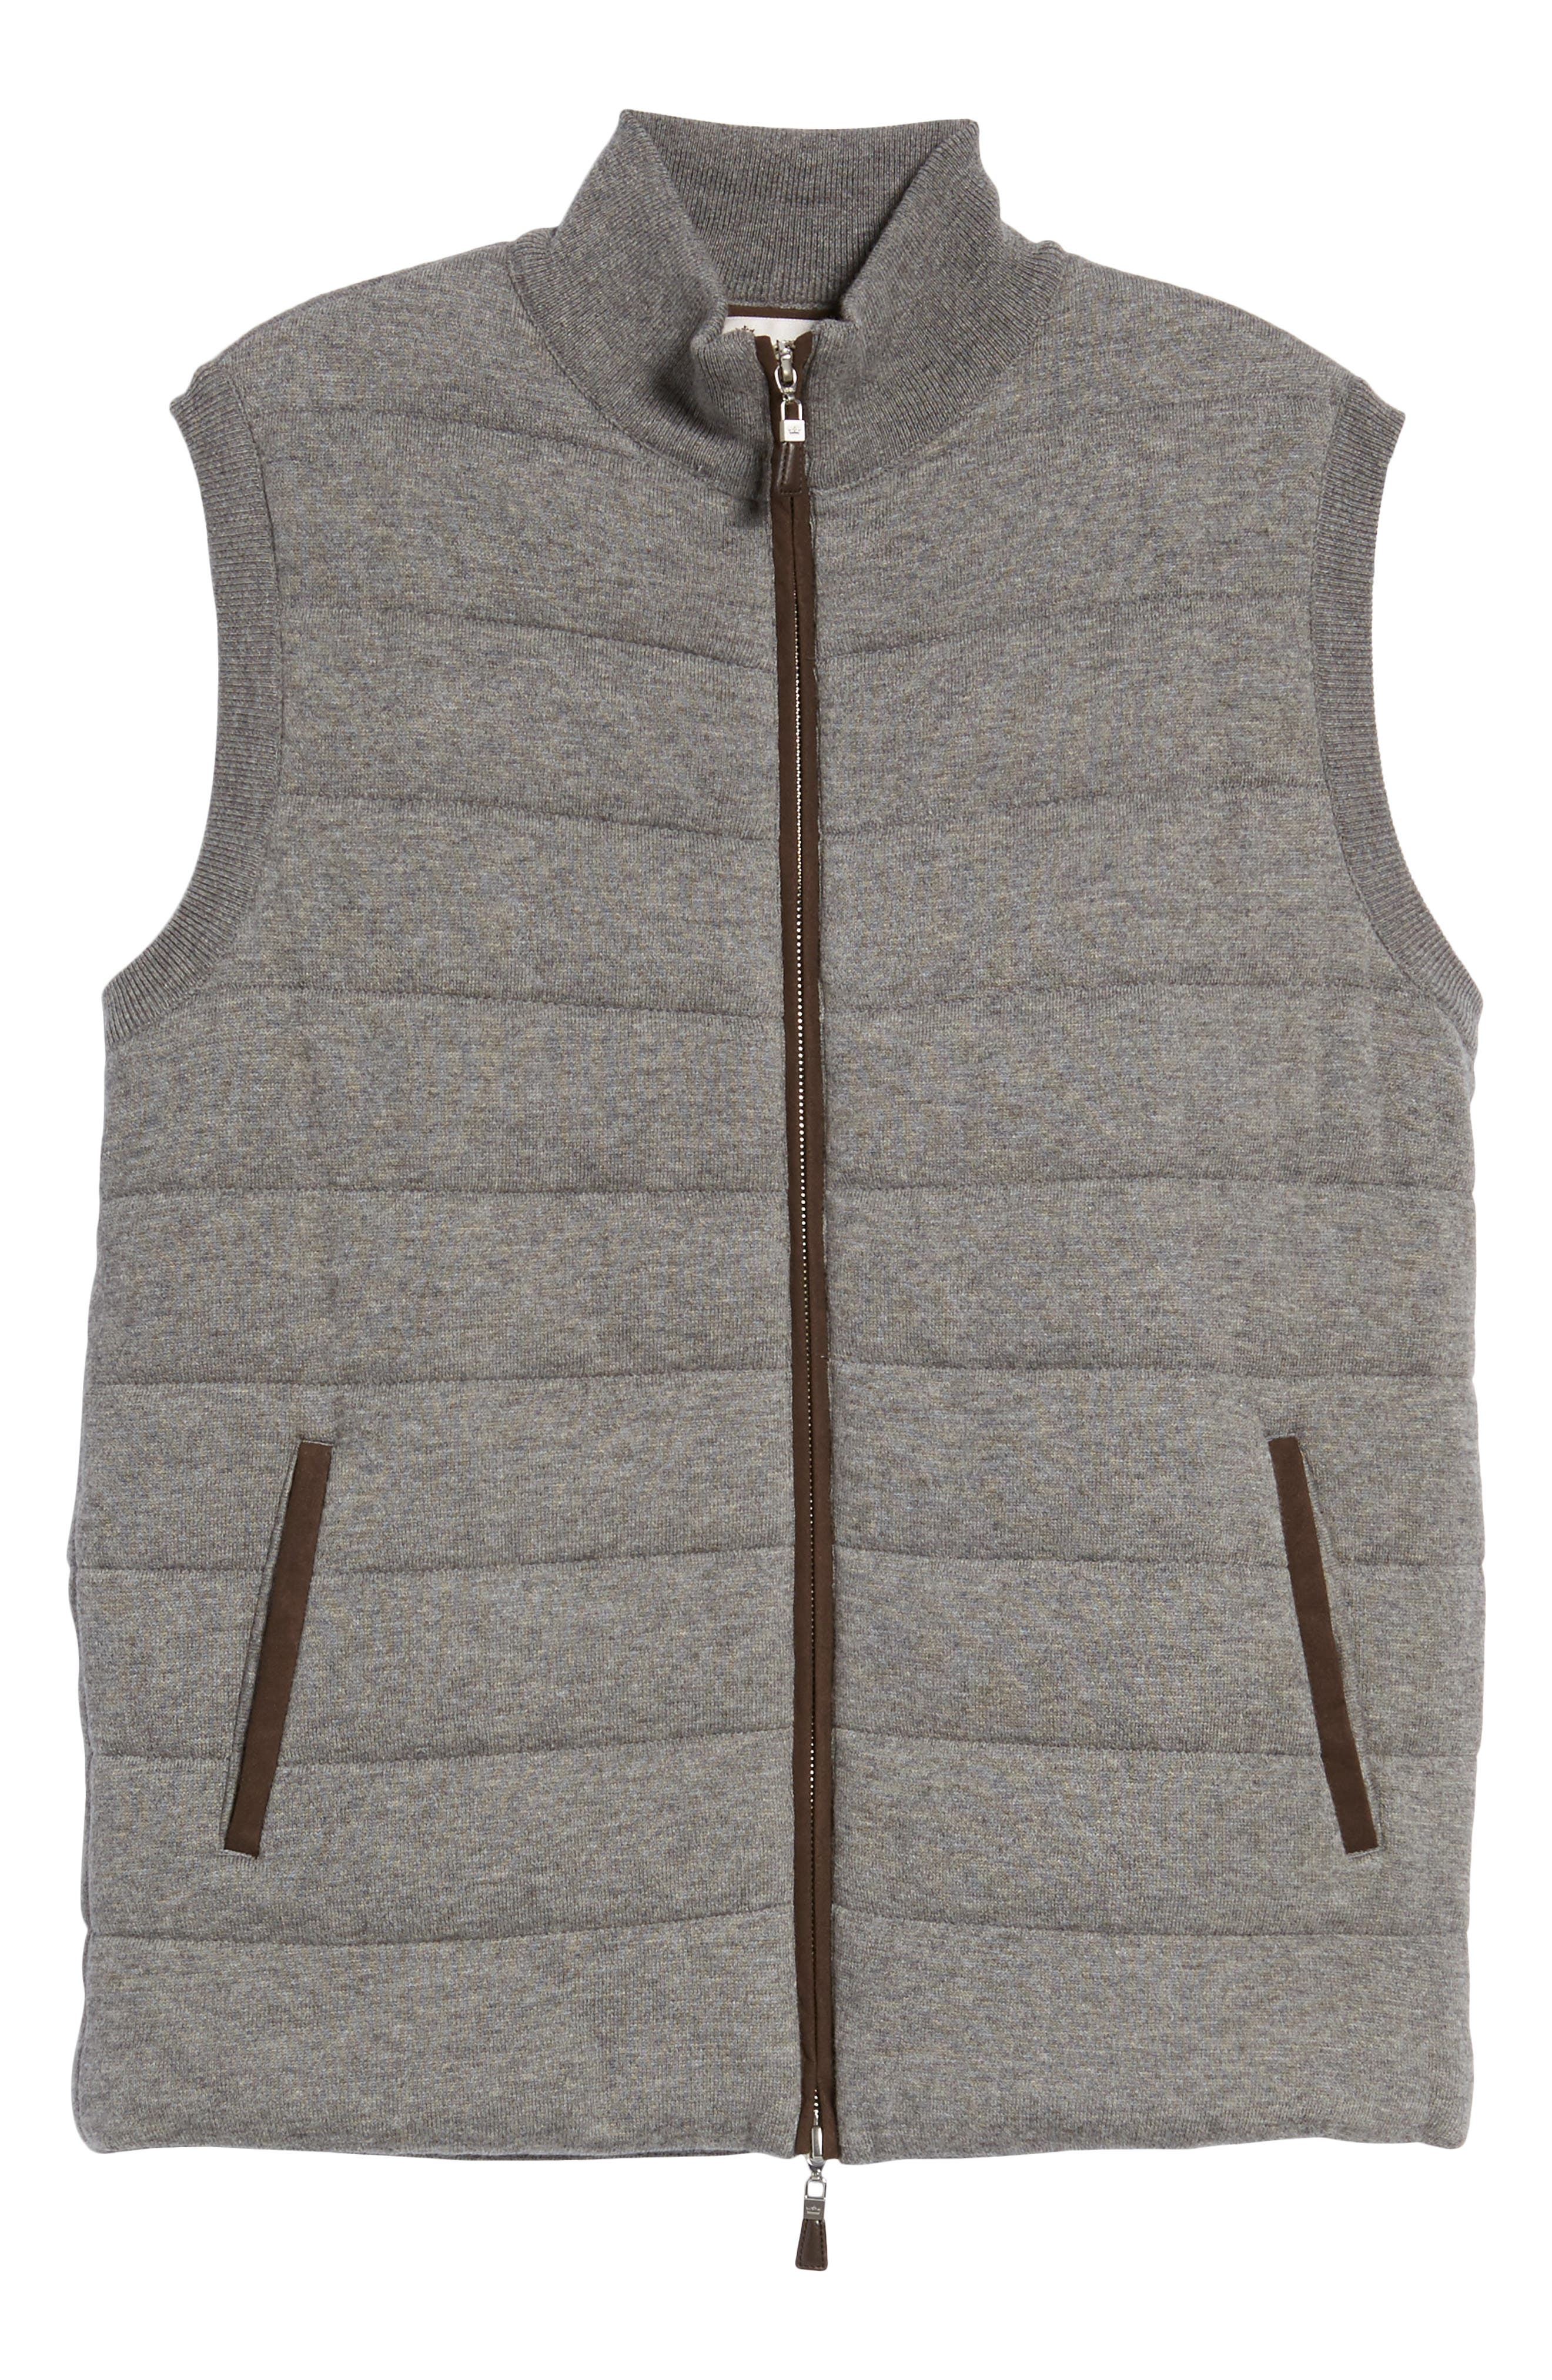 Quilted Wool & Cotton Full Zip Vest,                             Alternate thumbnail 6, color,                             020